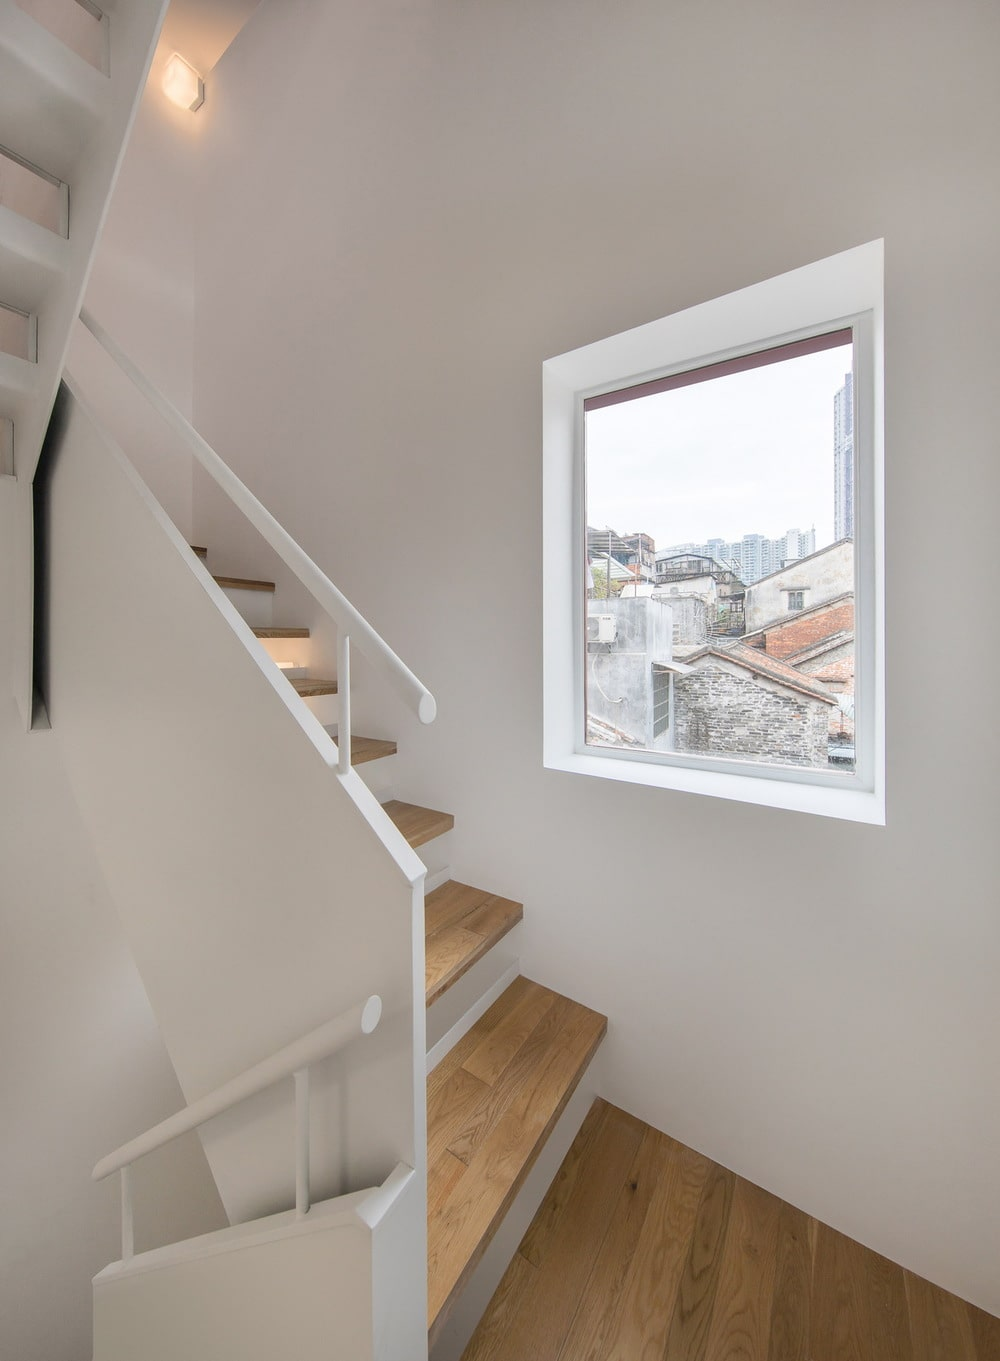 This is a look at the small window on the side of the staircase that brings in natural lighting.